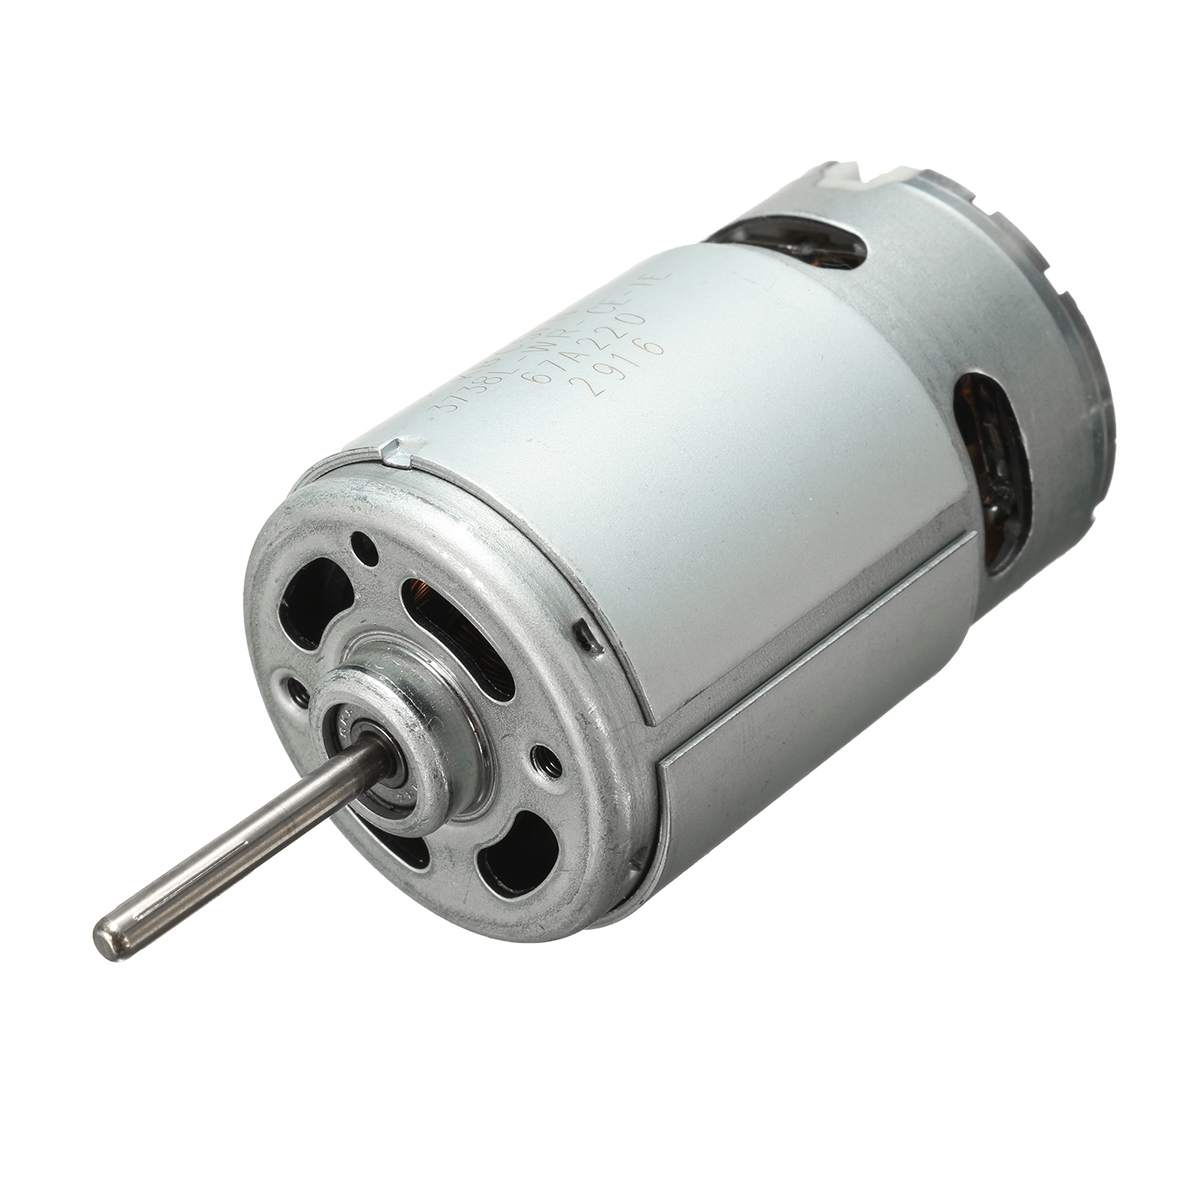 Dc 12 24v Ball Bearing Electric Motor 2900rpm Large Torque